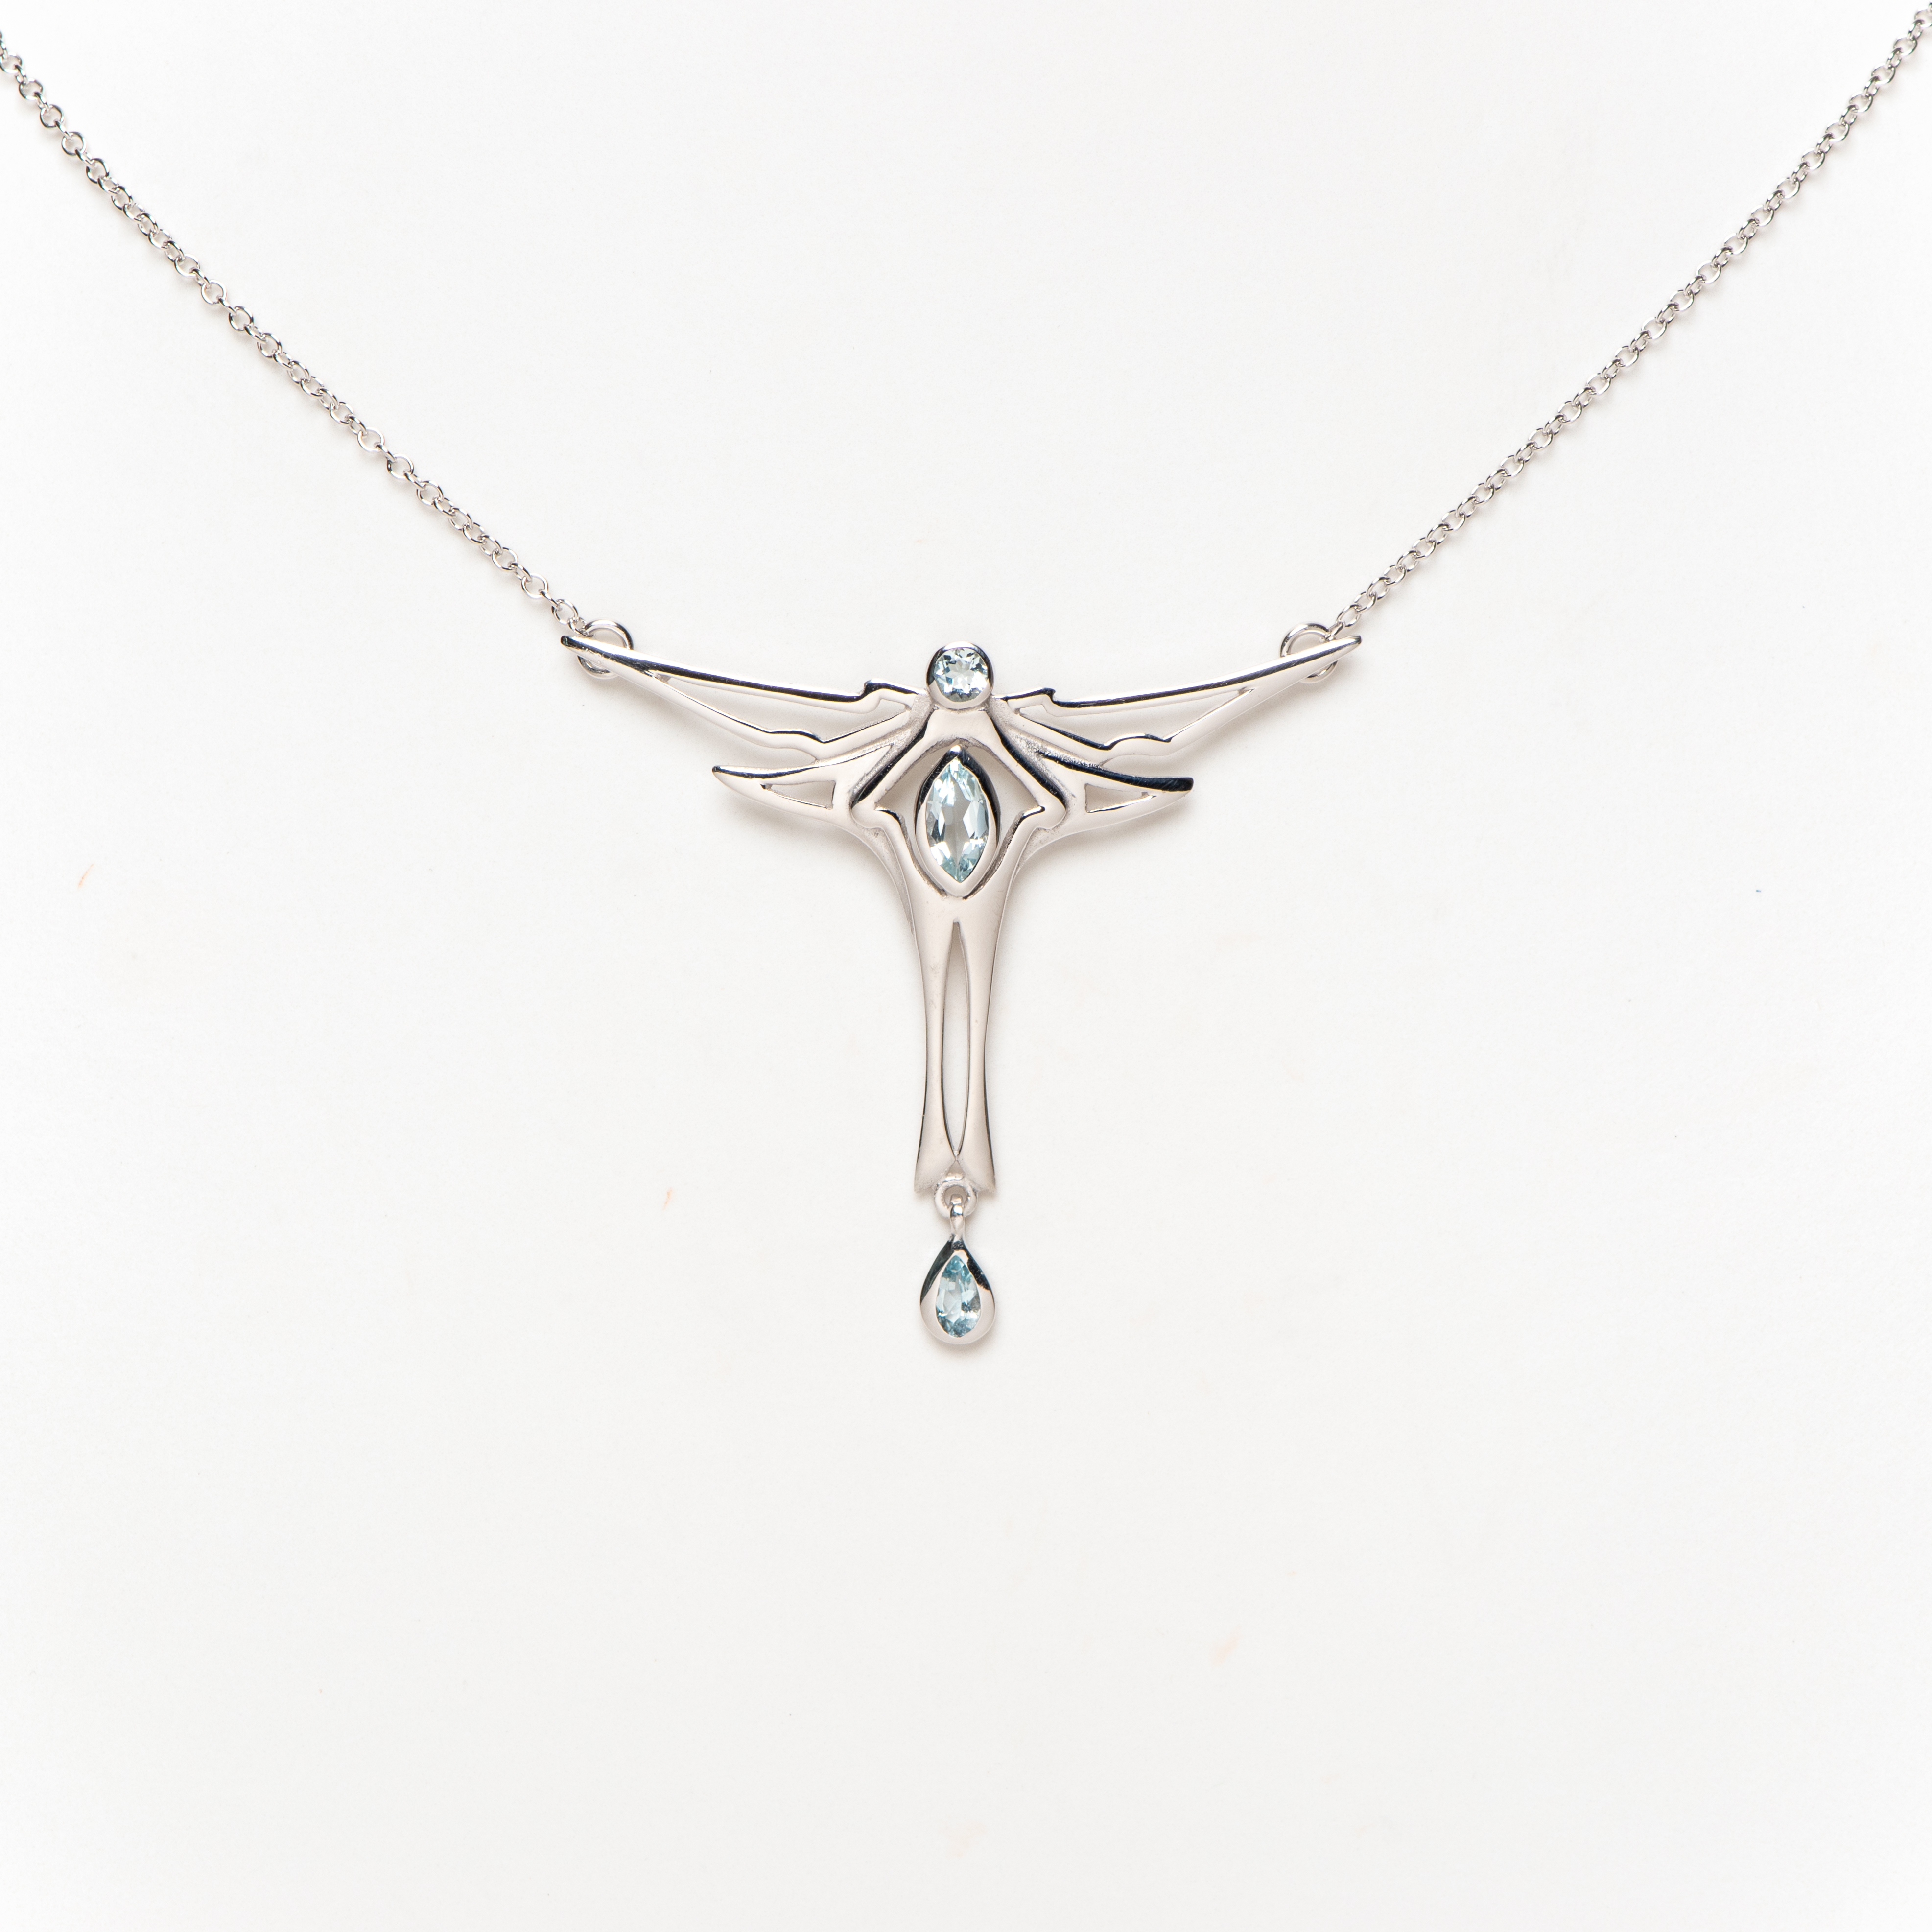 Collier Deco Dragonfly